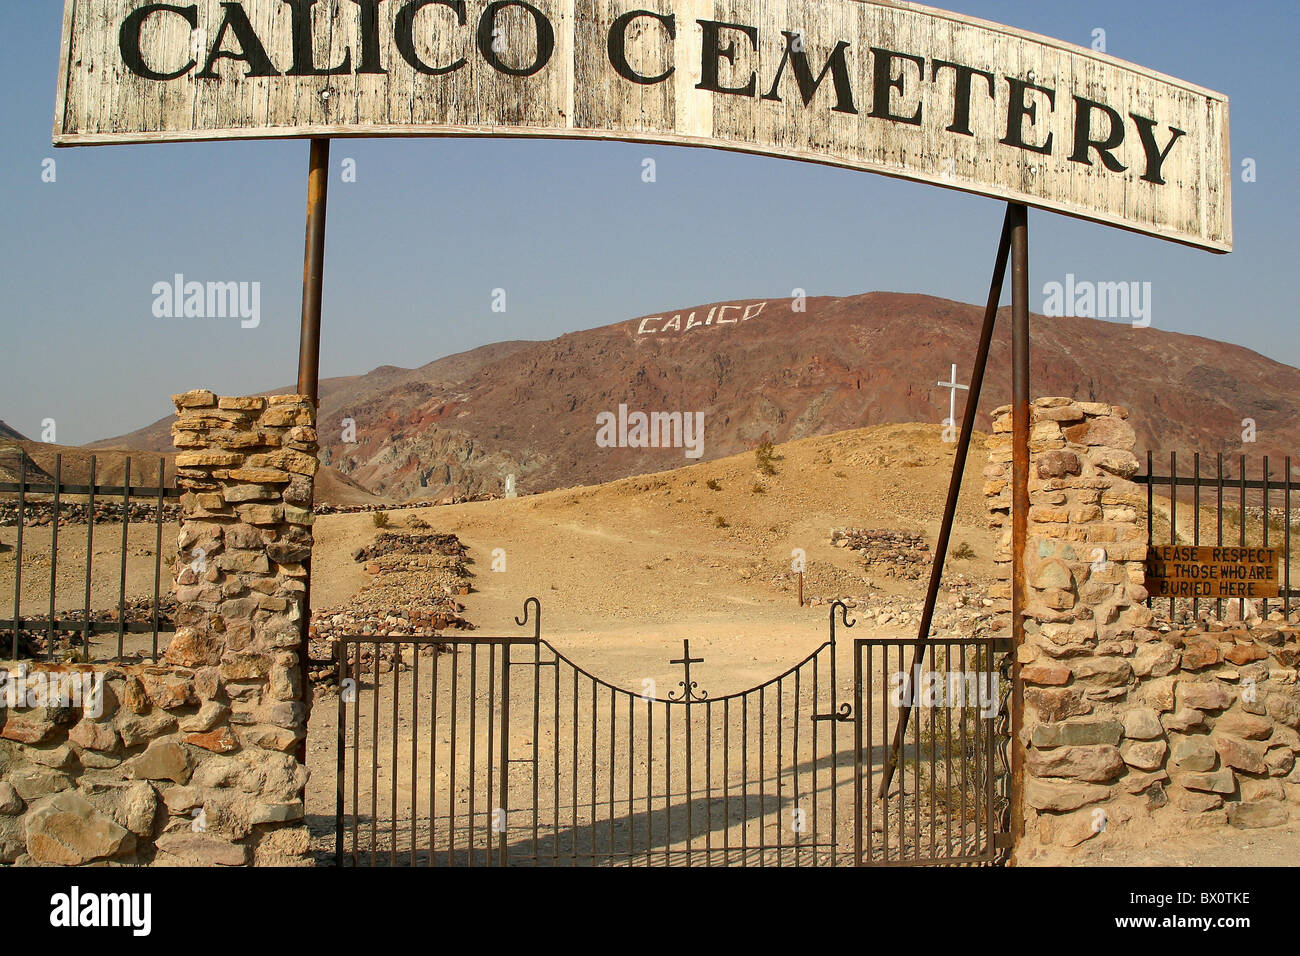 cemetery of Ghosttown Calico - USA, United States of America - Stock Image